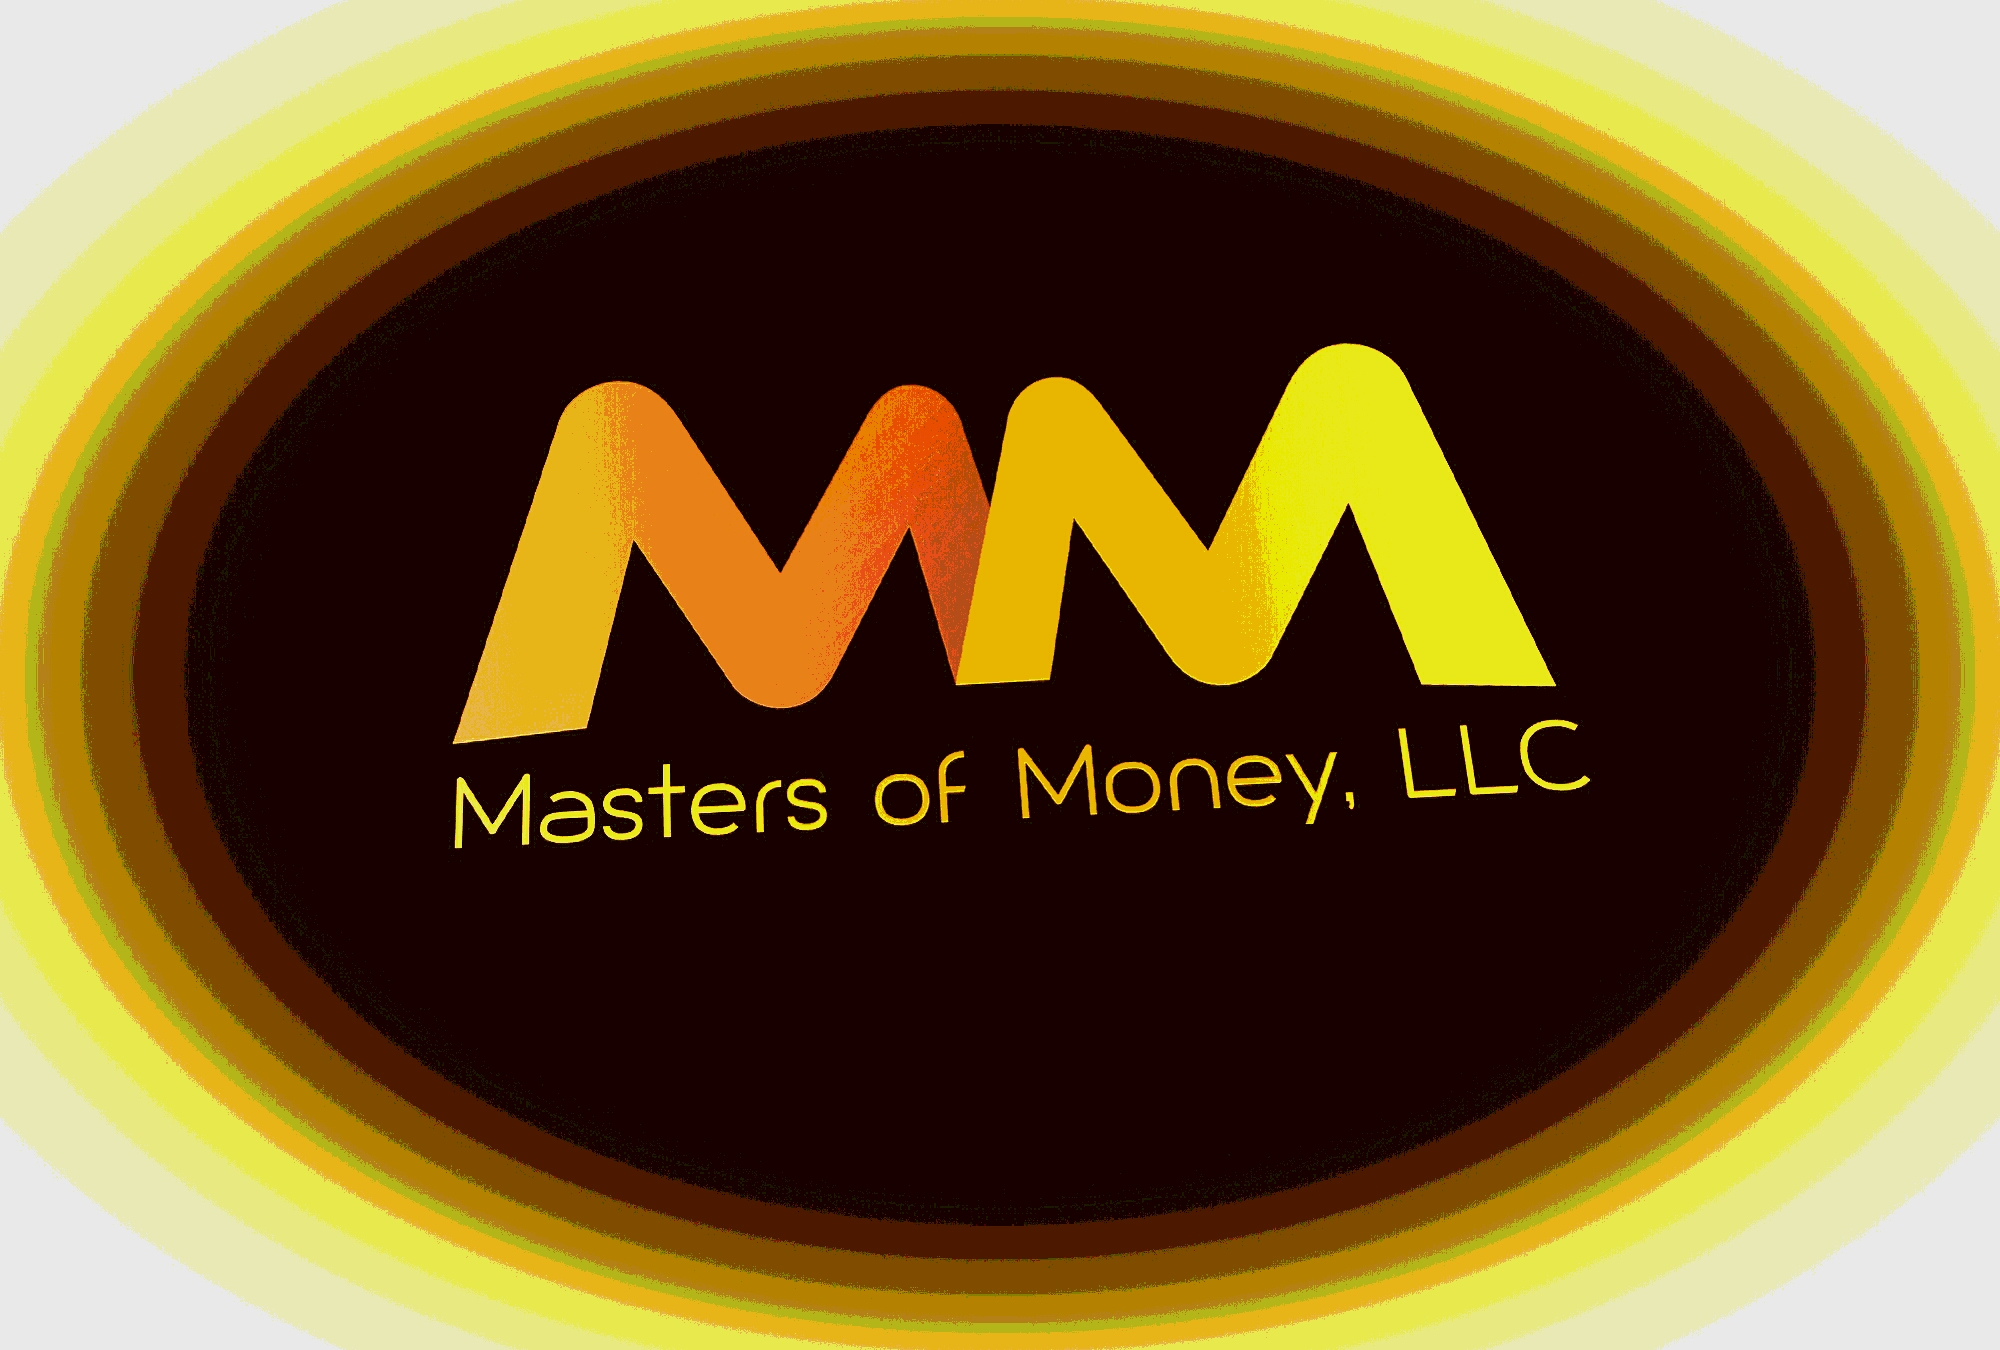 Masters of Money LLC Yellow Orange & Brown Logo